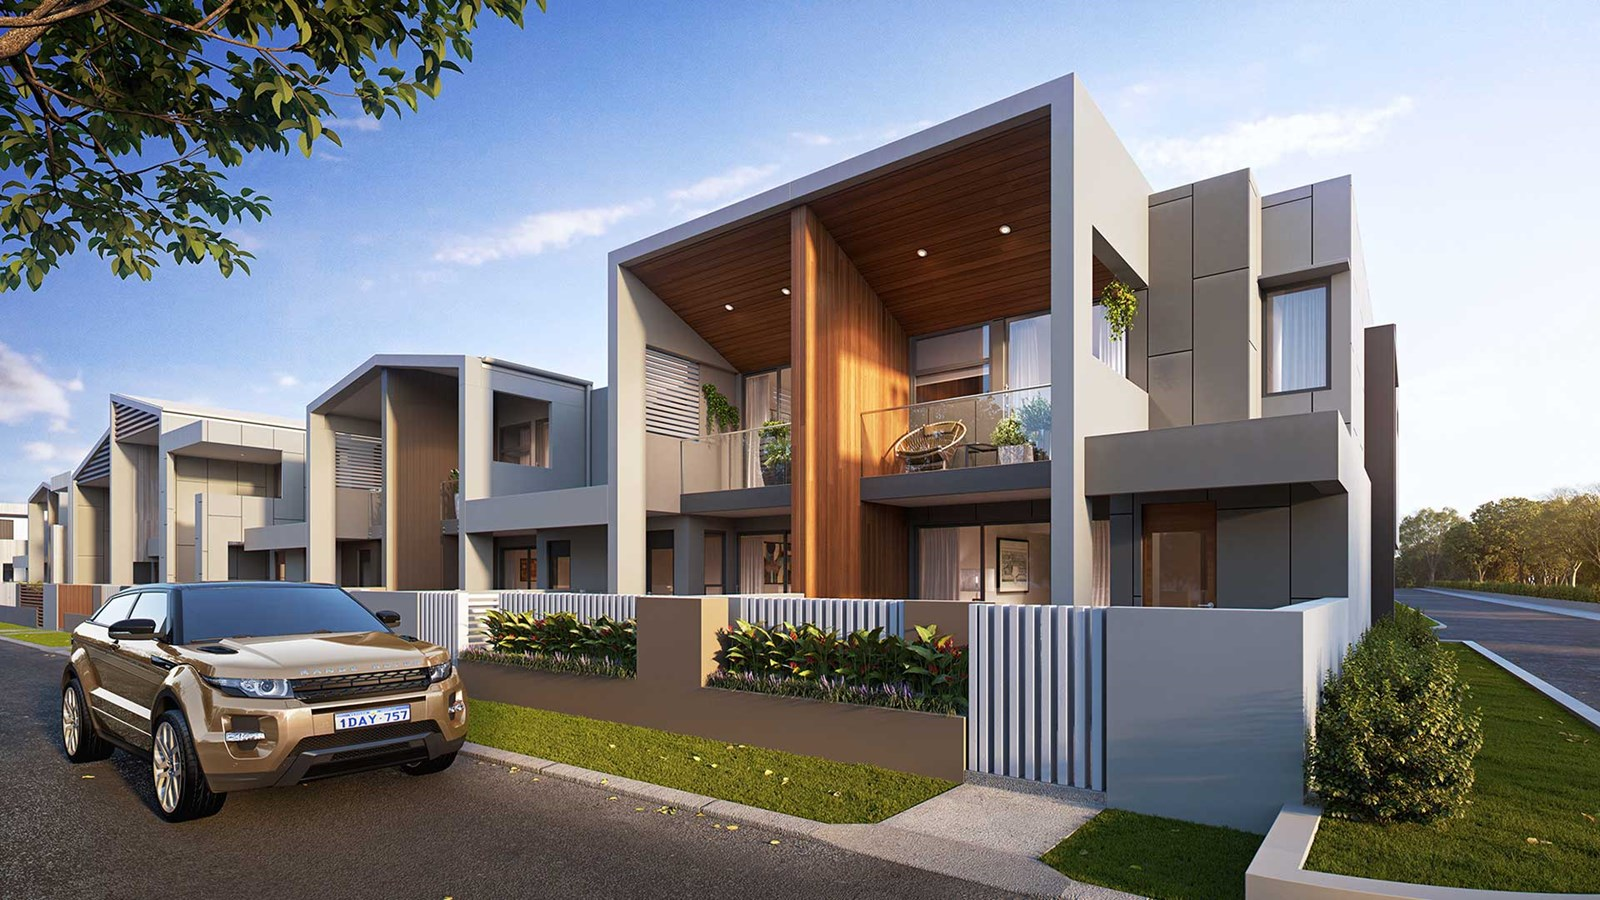 Vue terrace homes in 1 east lane robina qld 4226 for Terrace house 1